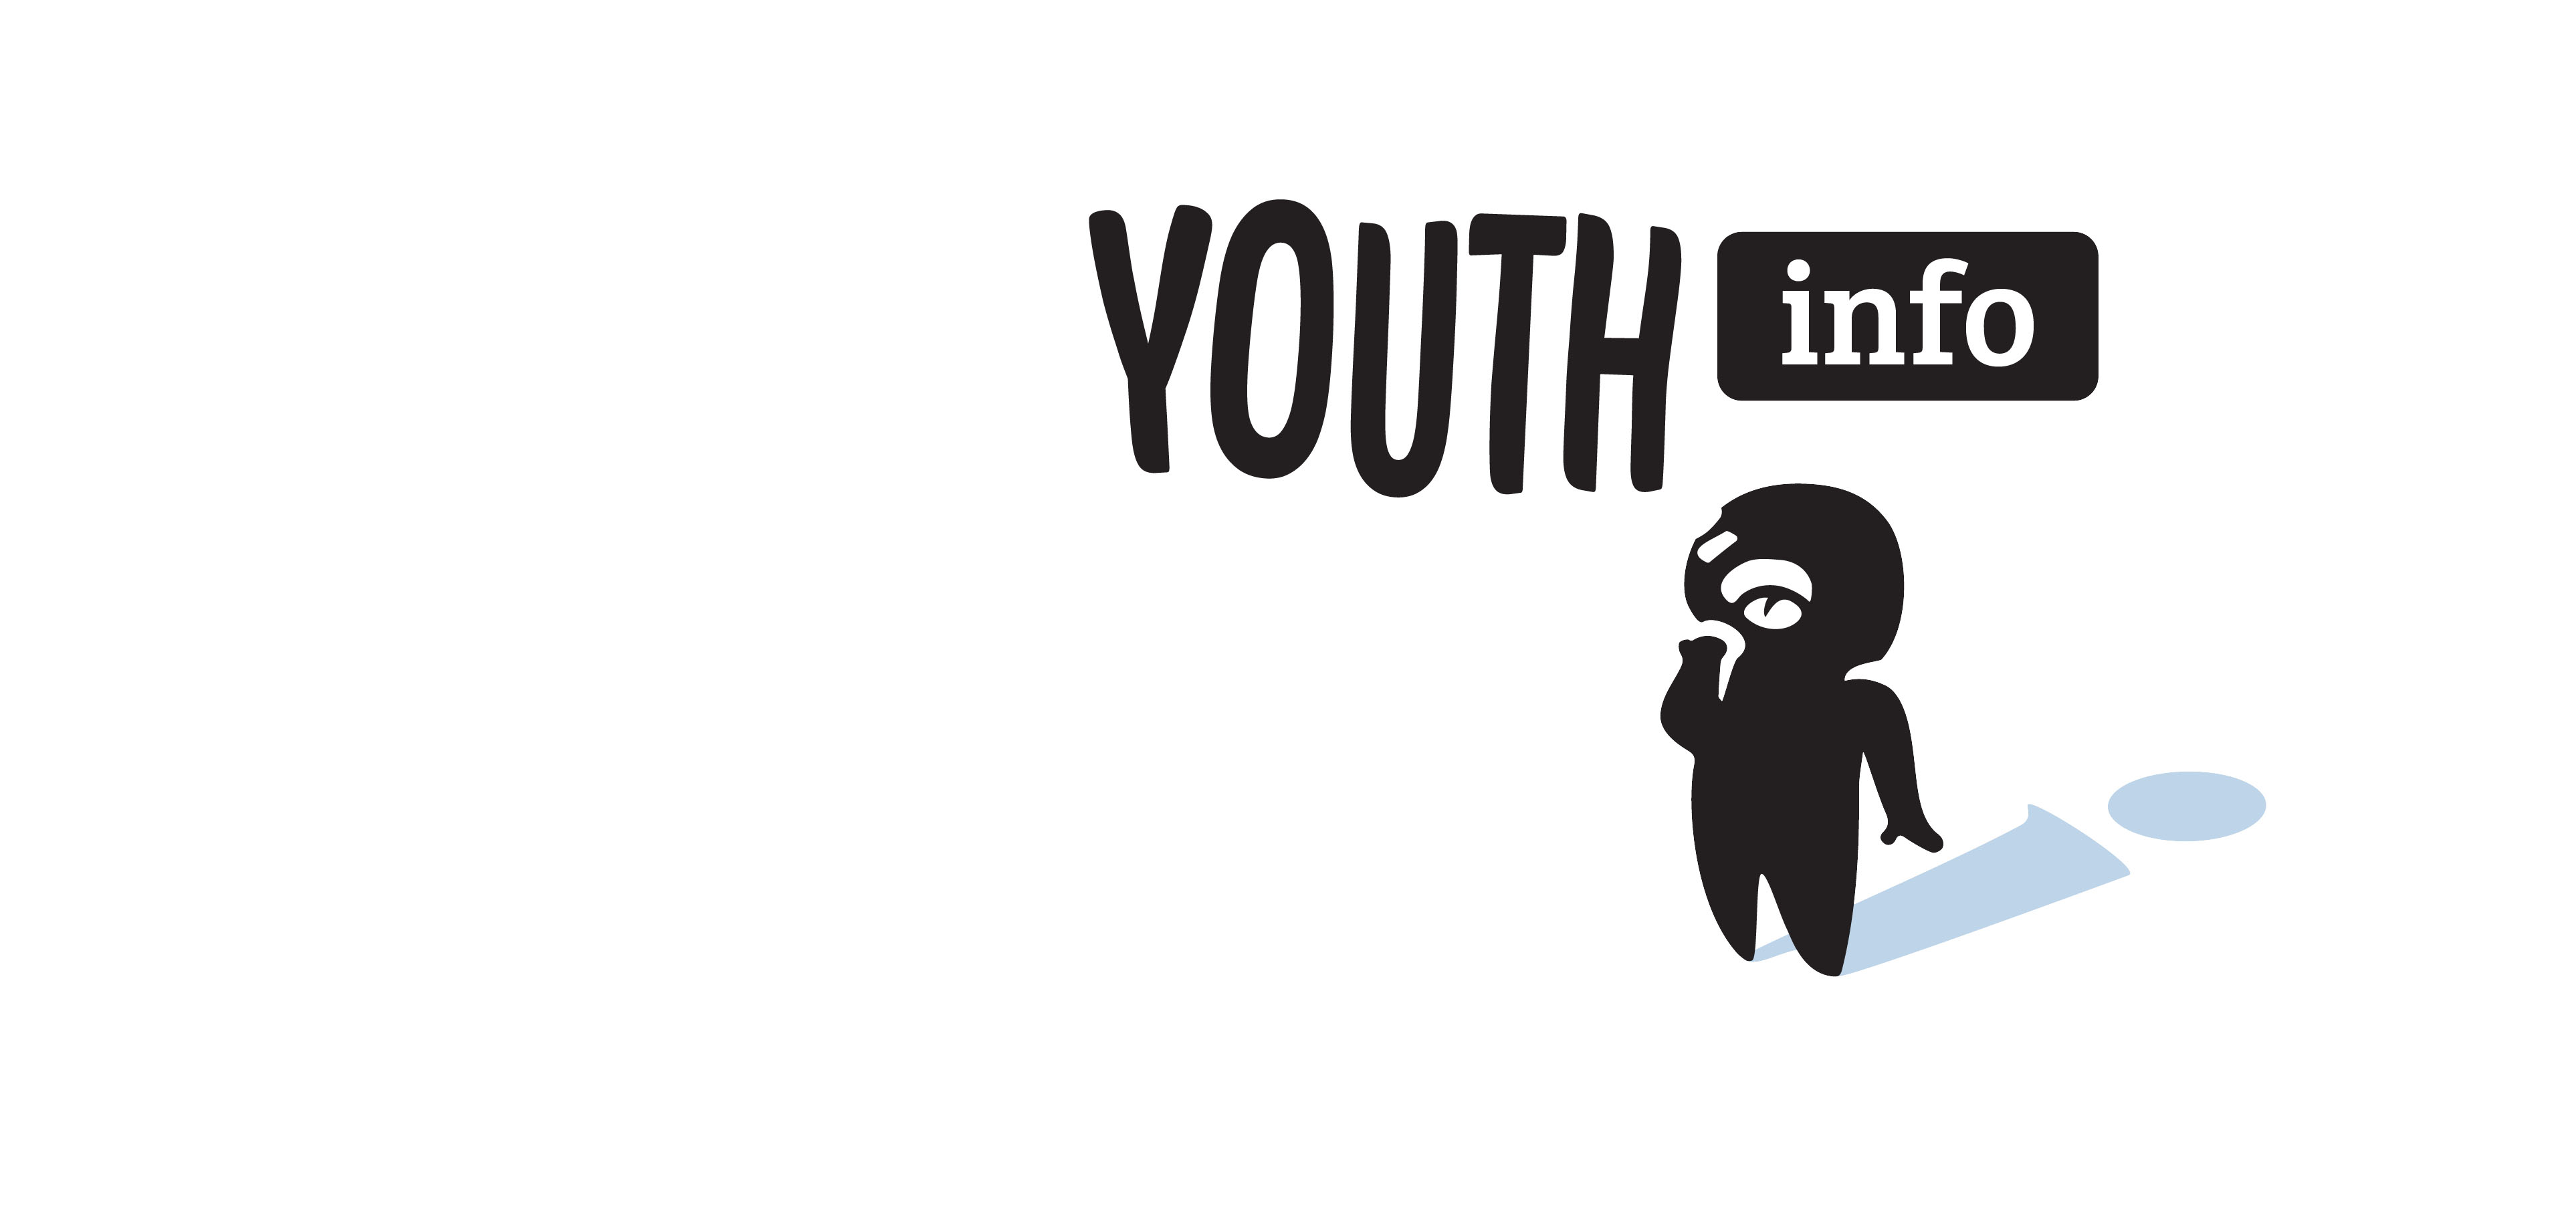 YOUTH INFO Grafik